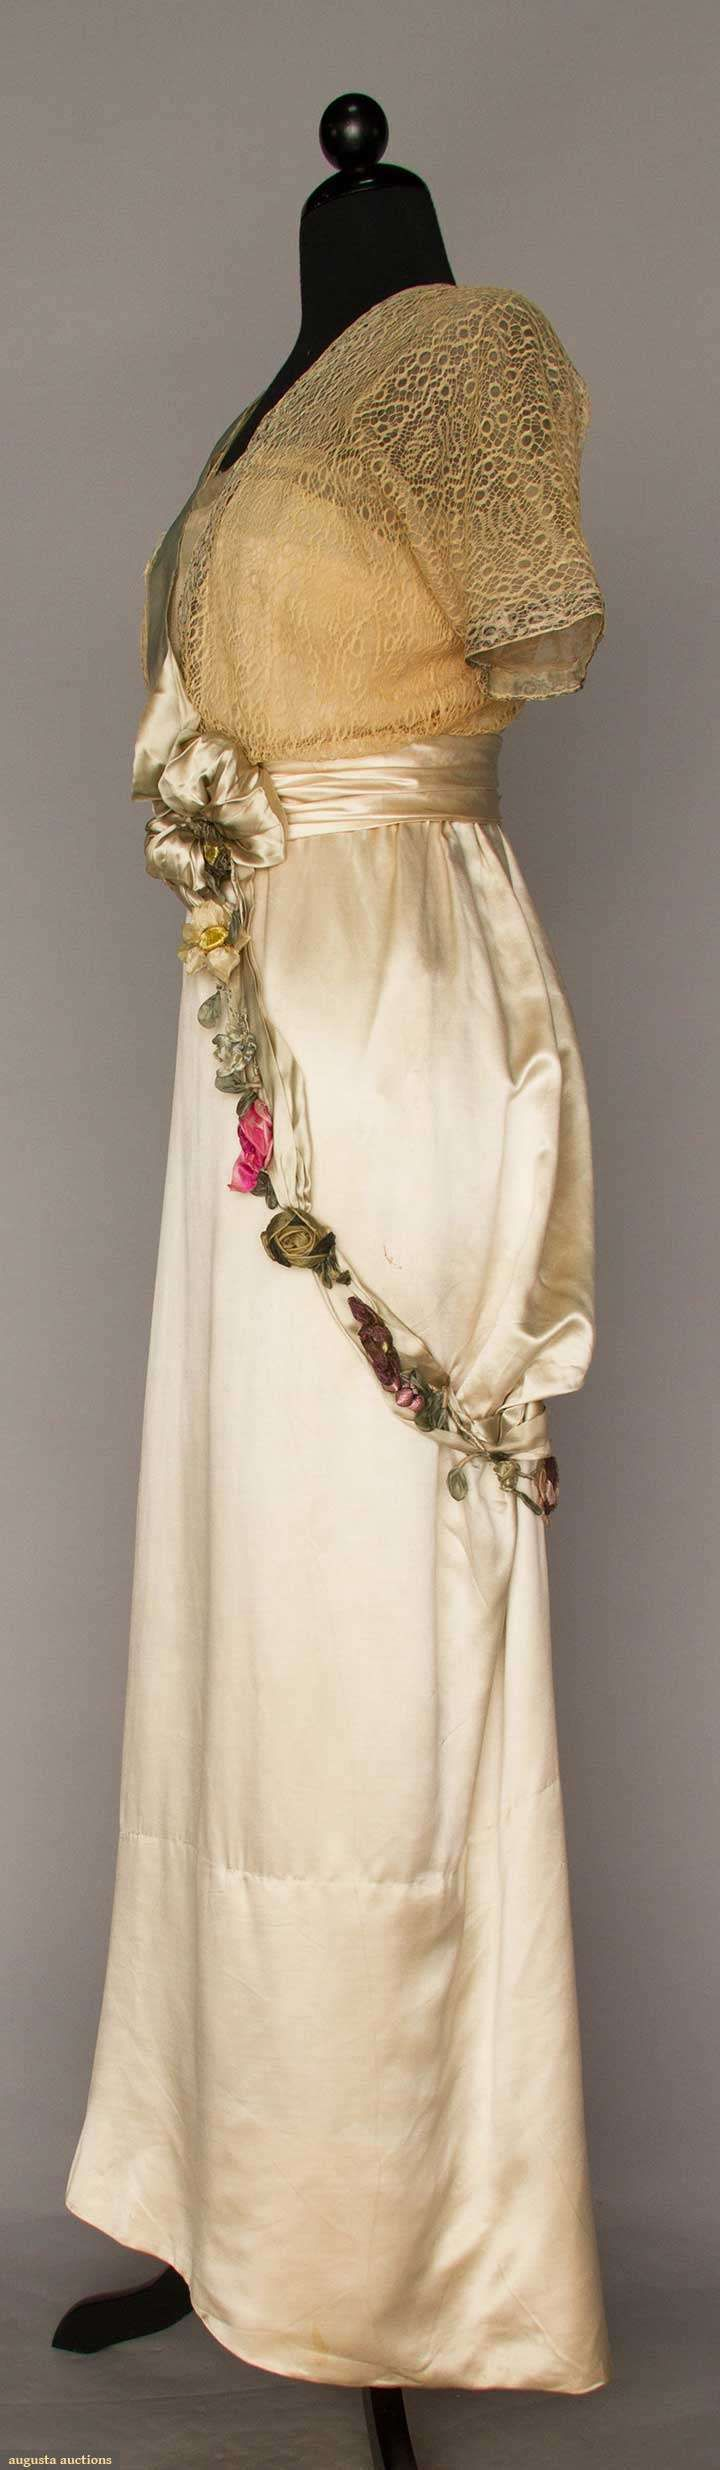 Evening Gown (image 2) | Jeanne Hallee | France; Paris | 1912 | satin charmeuse, lace | Augusta Auctions | May 10, 2016/Lot 1012